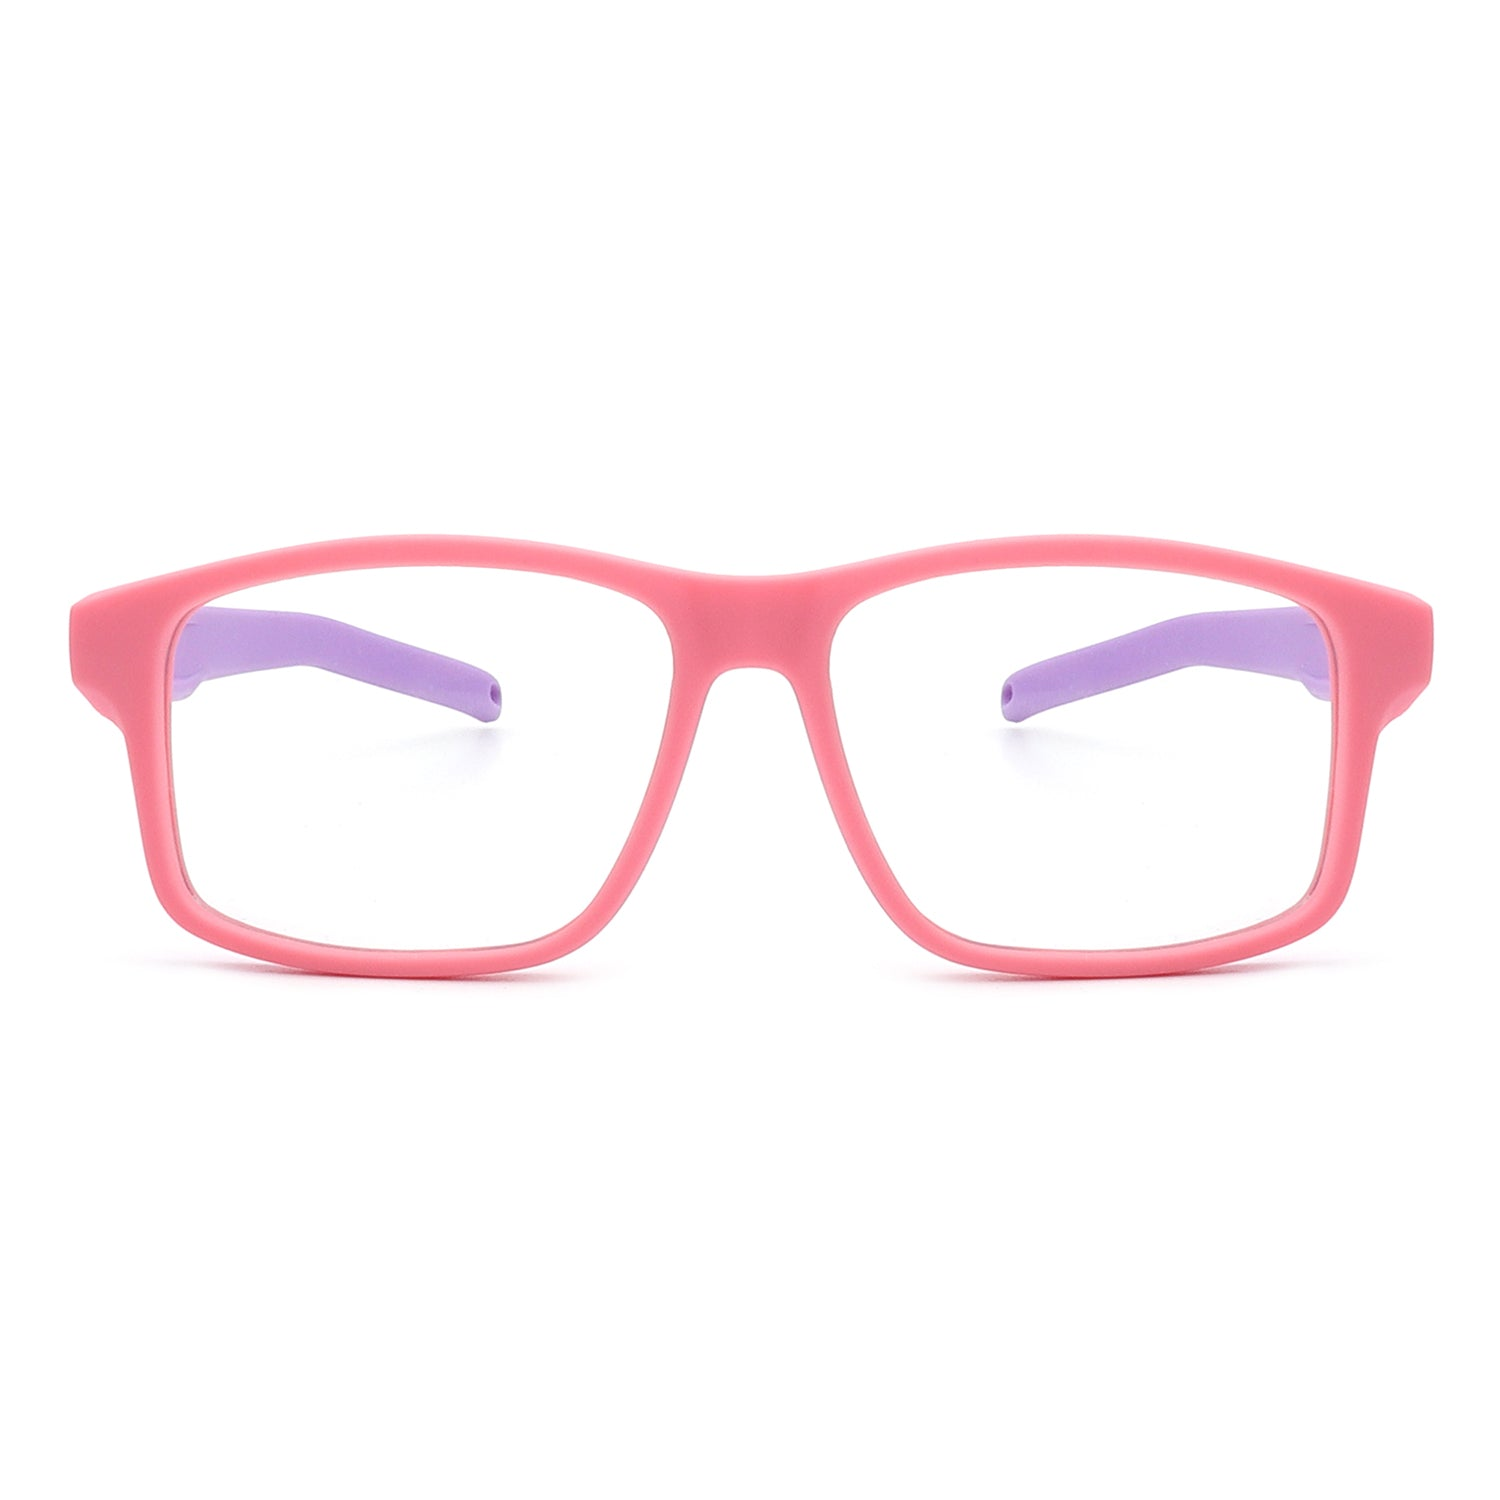 HK1012 - Children Rectangle Classic Blue Light Blocker Glasses